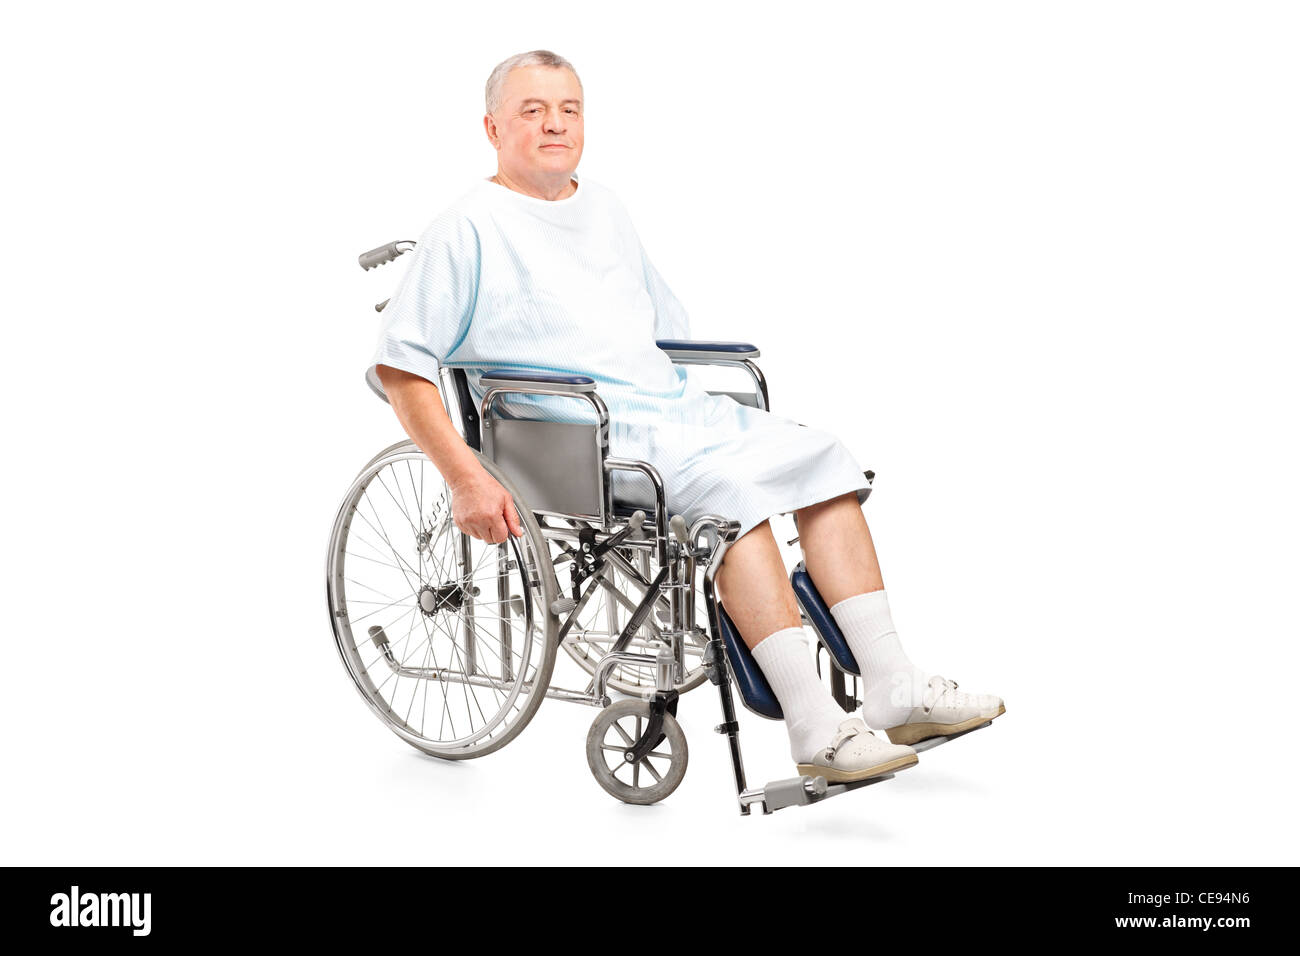 Male patient in a wheelchair - Stock Image